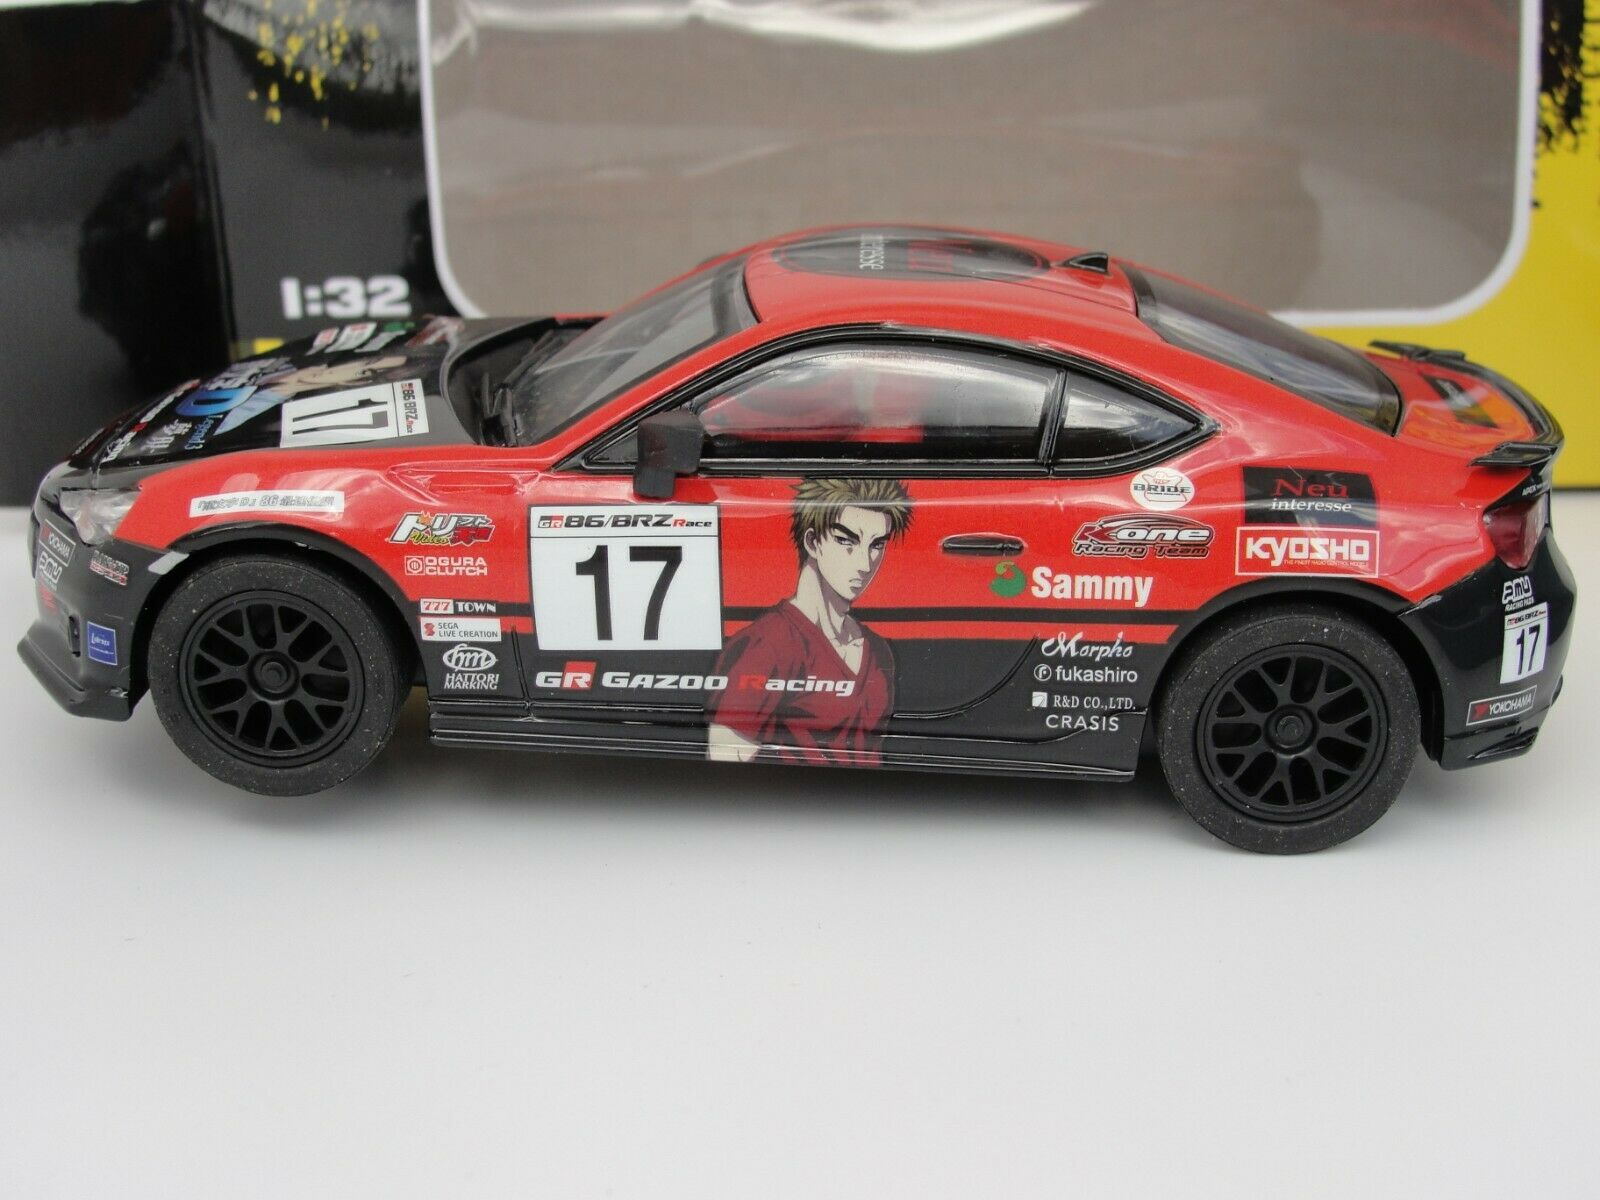 POLICAR HOME RACERS TOYOTA 'GR GAZOO RACING' CT01A  1 32 SLOT BNIB